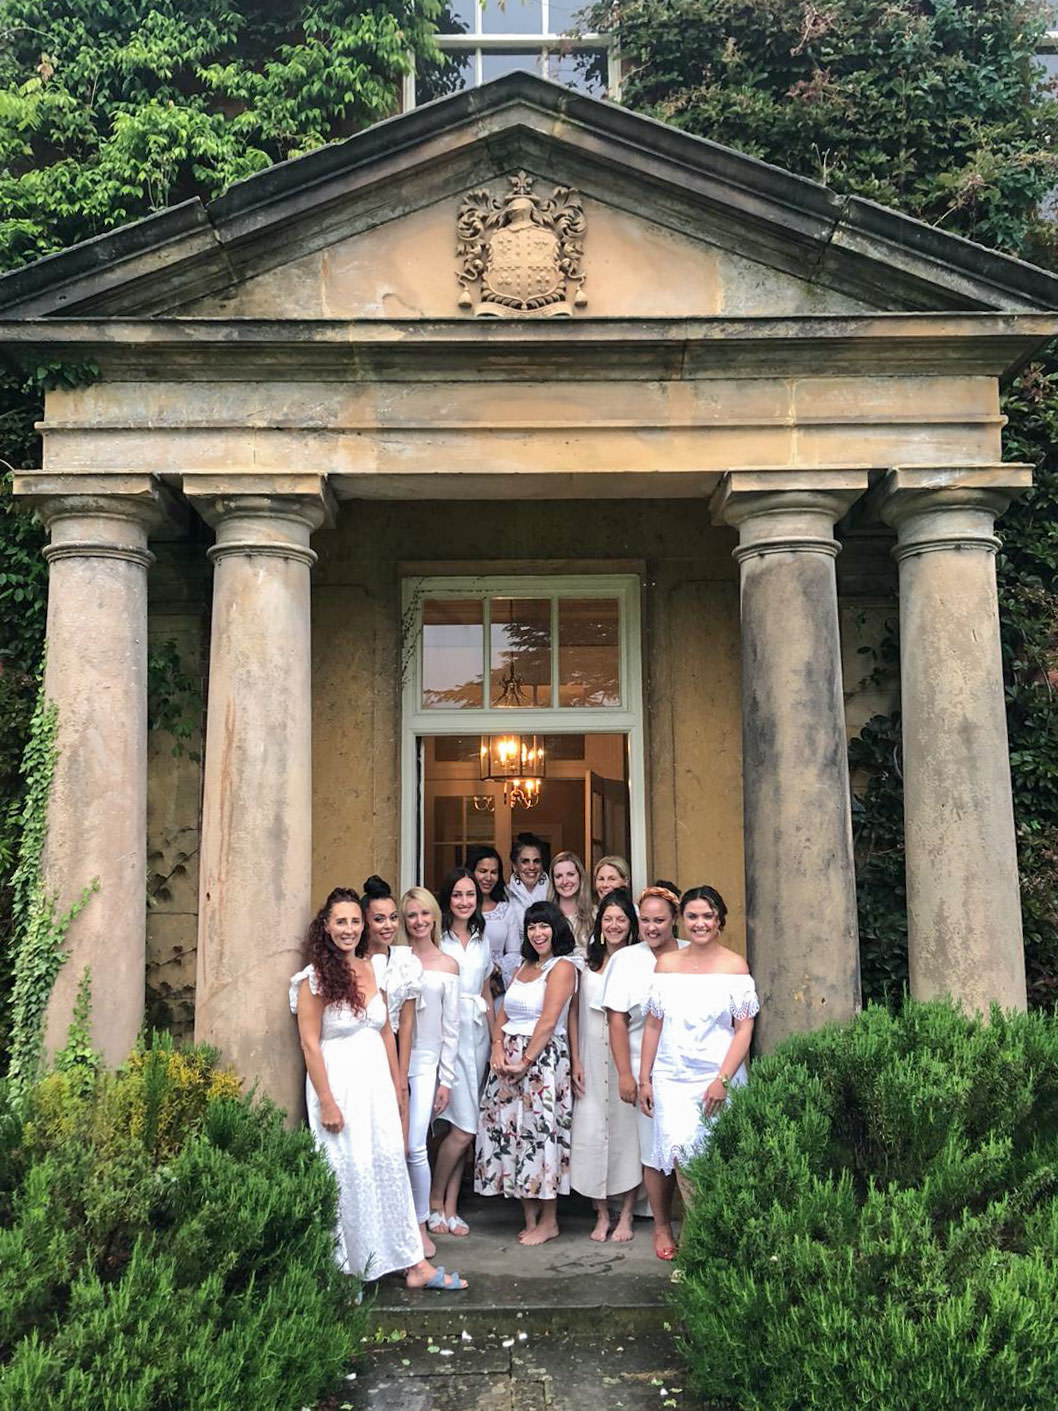 Flutter Magazine Retreat in the Cotswolds at Norton Hall. Women wearing all white for a farewell dinner